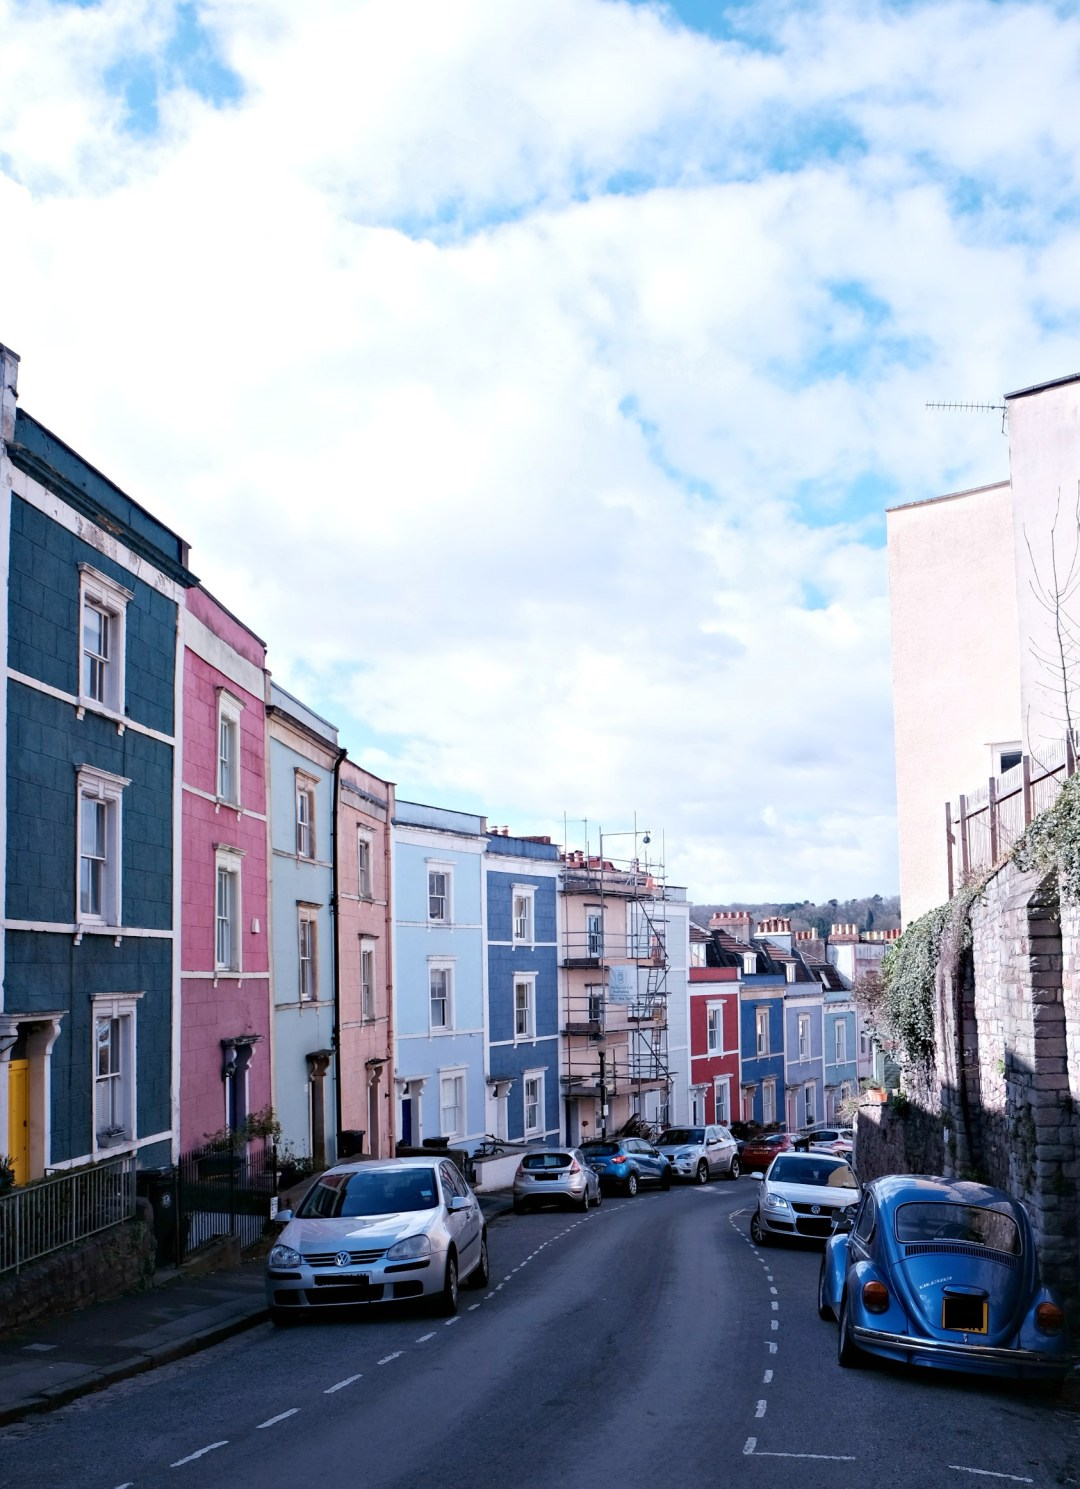 Picture of colourful house street in clifton.  48 hours in clifton itinerary.